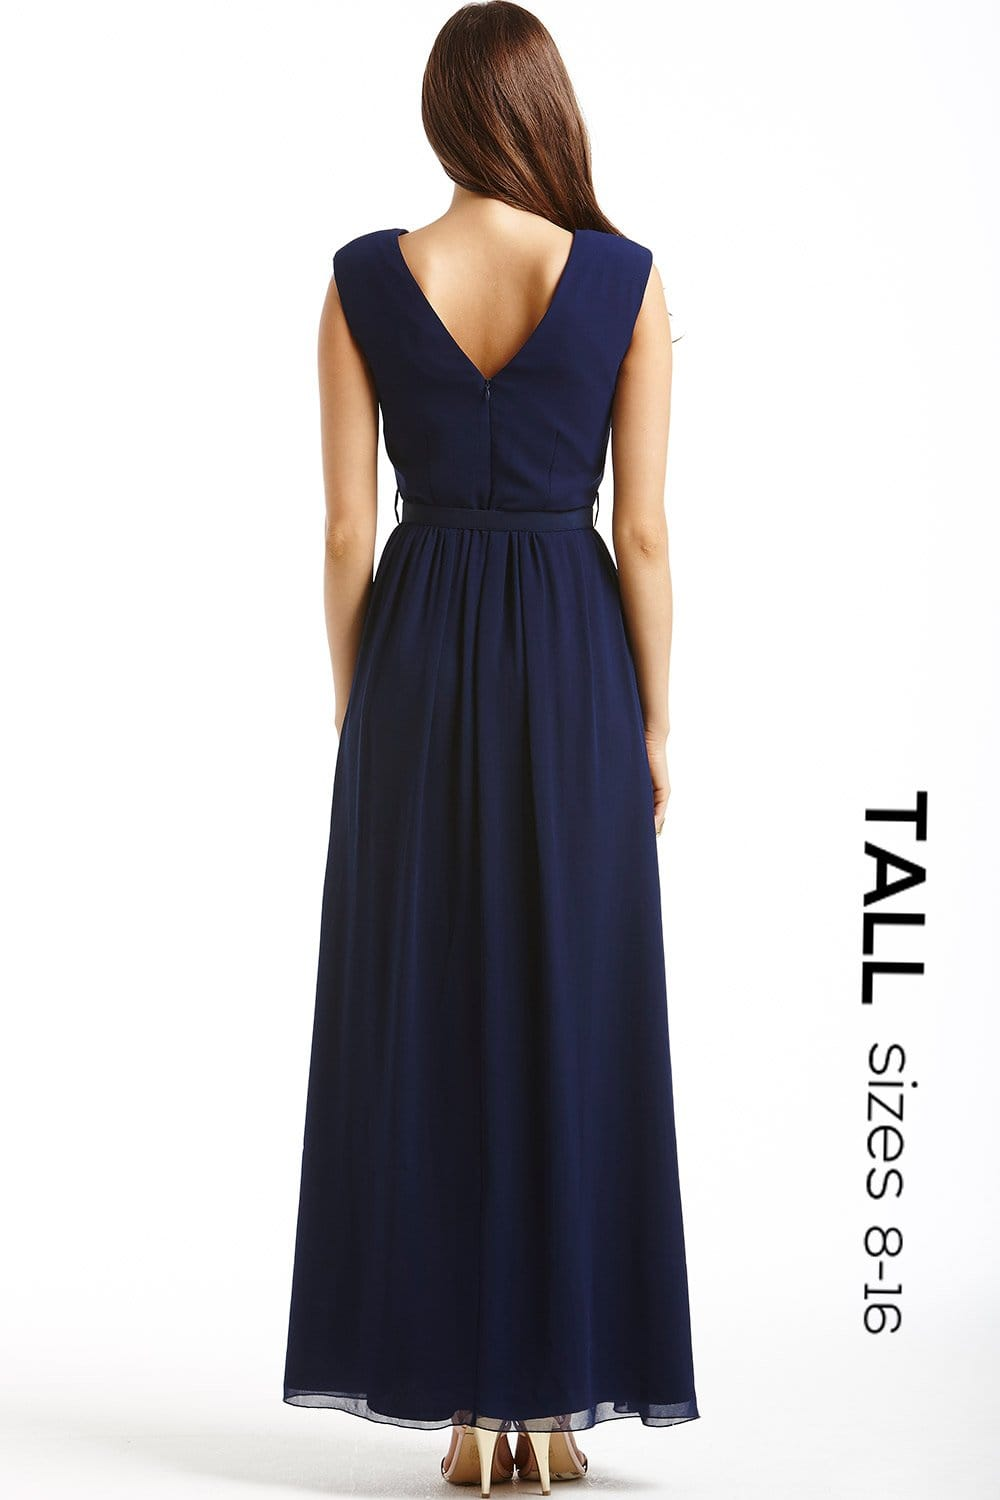 Tall Dresses For Tall Women - Bring a hint of feminine glamour to your new season look with Long Tall Sally pretty styles and prints tall dresses. Tall dresses range incorporates a variety of different styles, from relaxed floral tea dresses to figure-hugging pencil shapes.